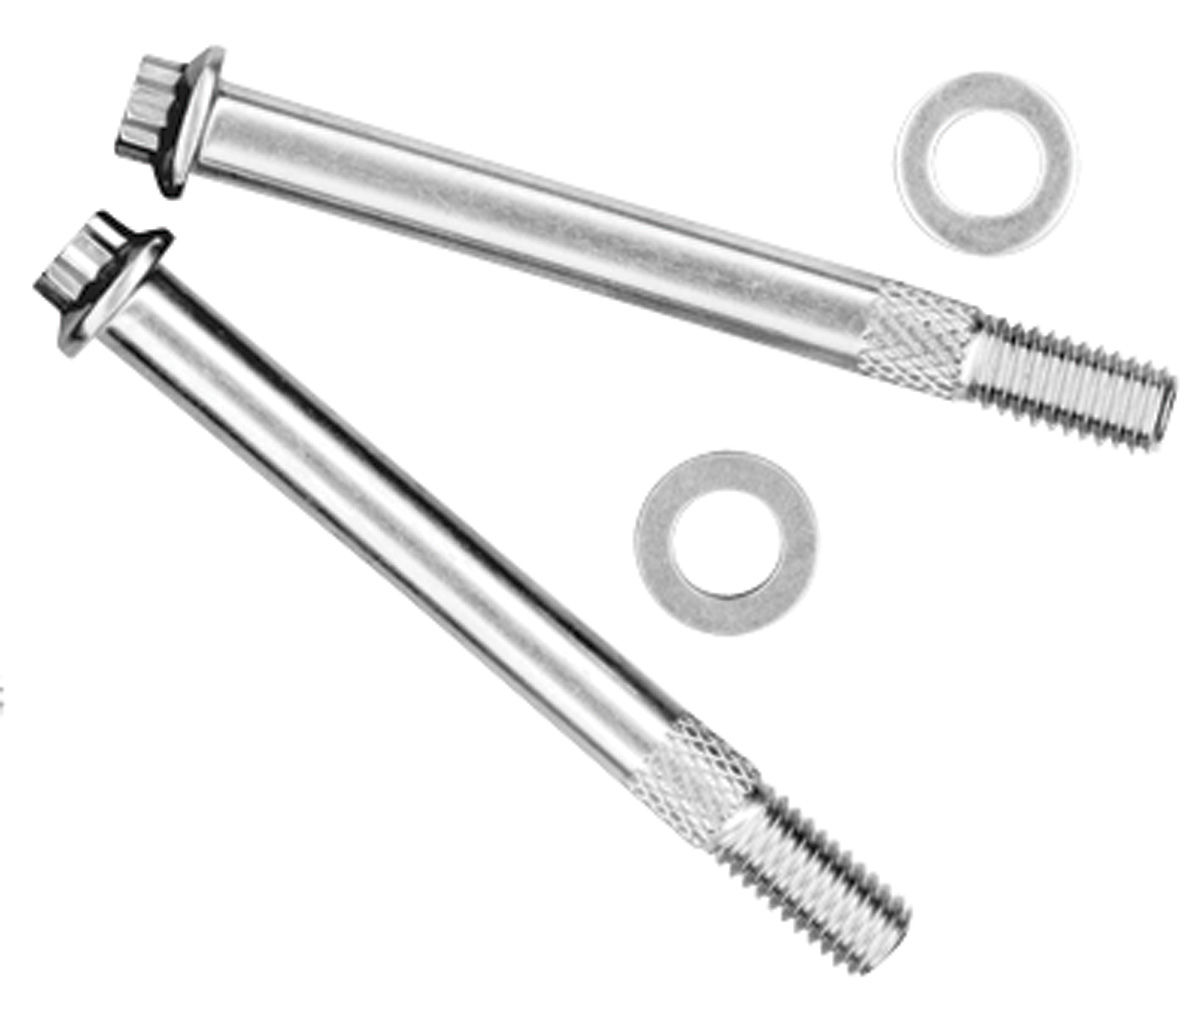 Arp 77 Chevelle Starter Bolts Standard 12 Point Head